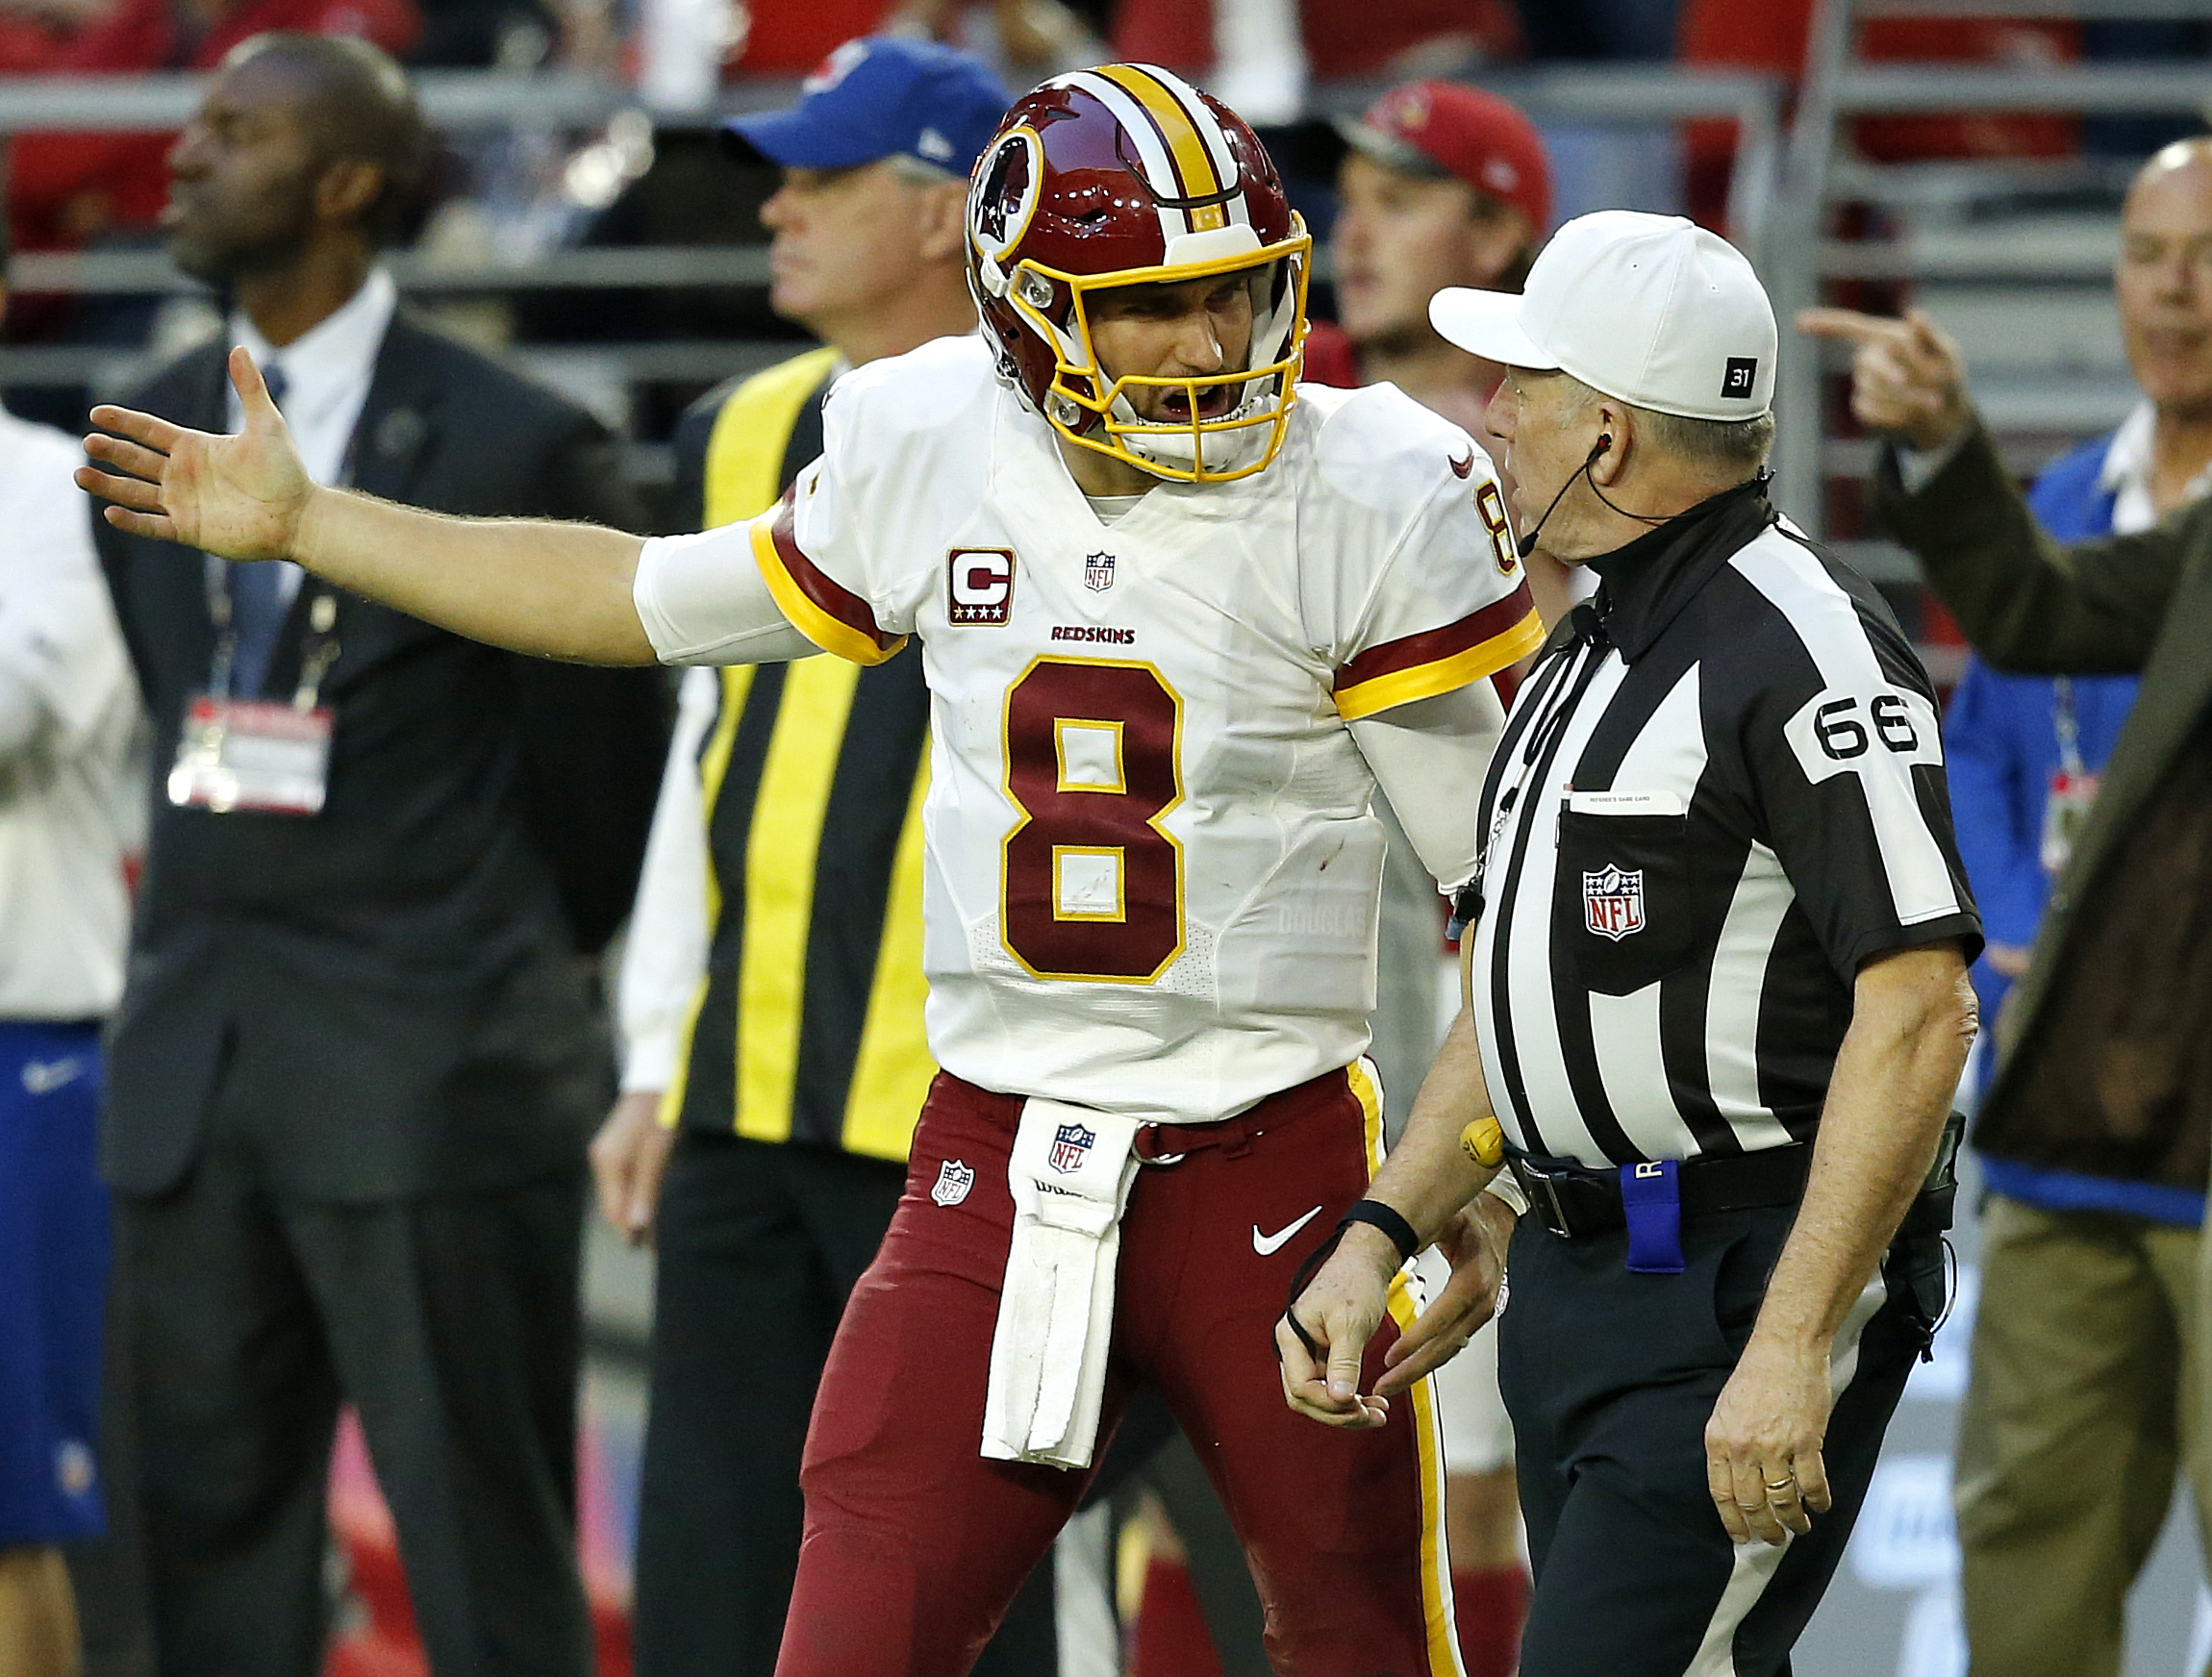 Washington Redskins quarterback Kirk Cousins (8) argues a call with referee Walt Anderson (66) during the second half of an NFL football game against the Arizona Cardinals, Sunday, Dec. 4, 2016, in Glendale, Ariz. (AP Photo/Ross D. Franklin)